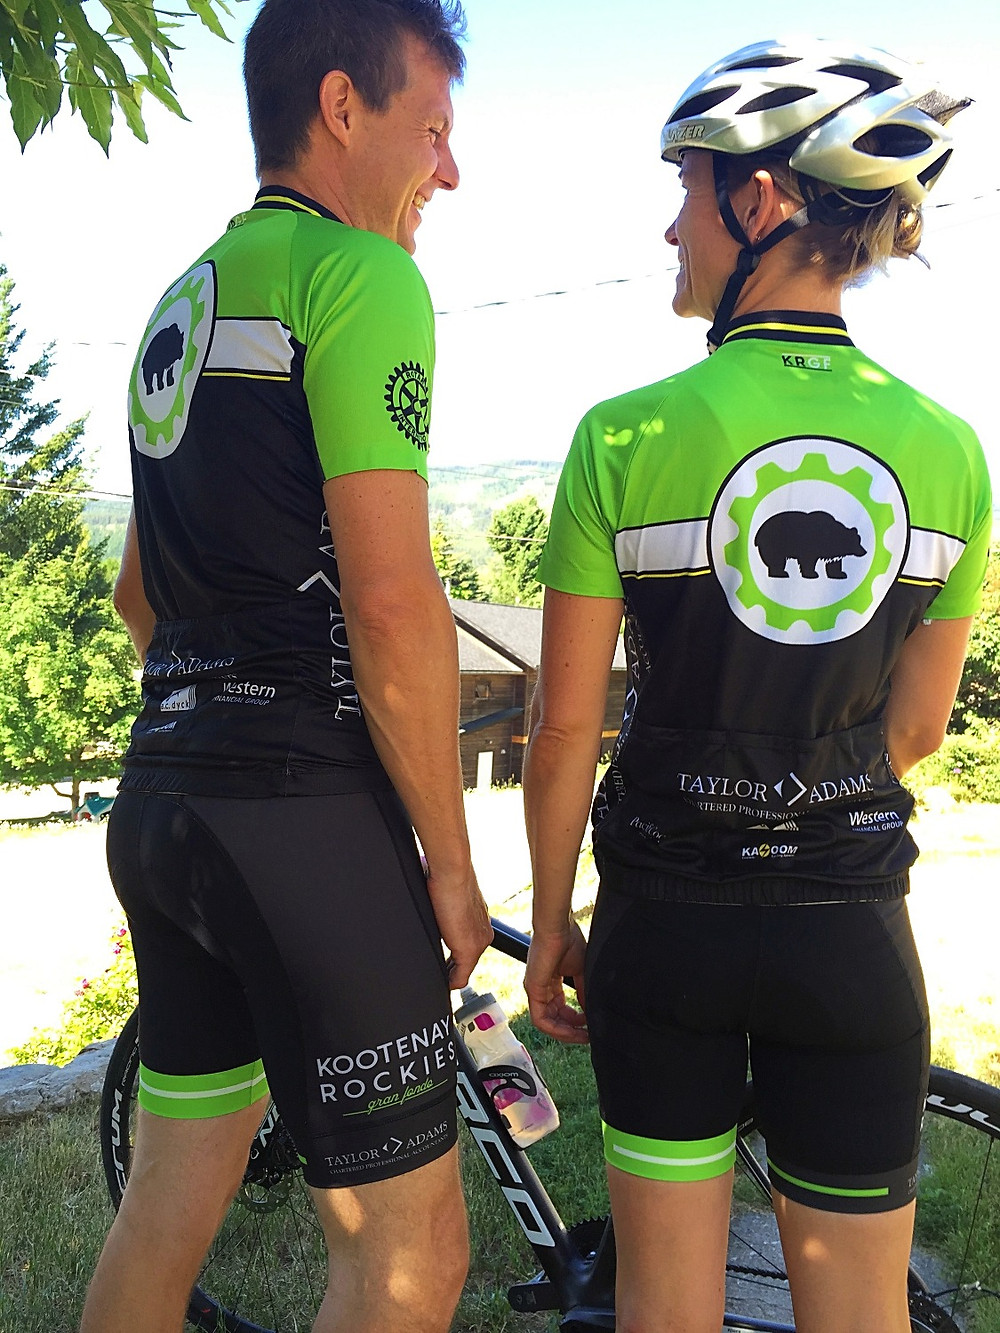 Kazoom Custom Cycling Apparel Kootenay Rockies Gran Fondo